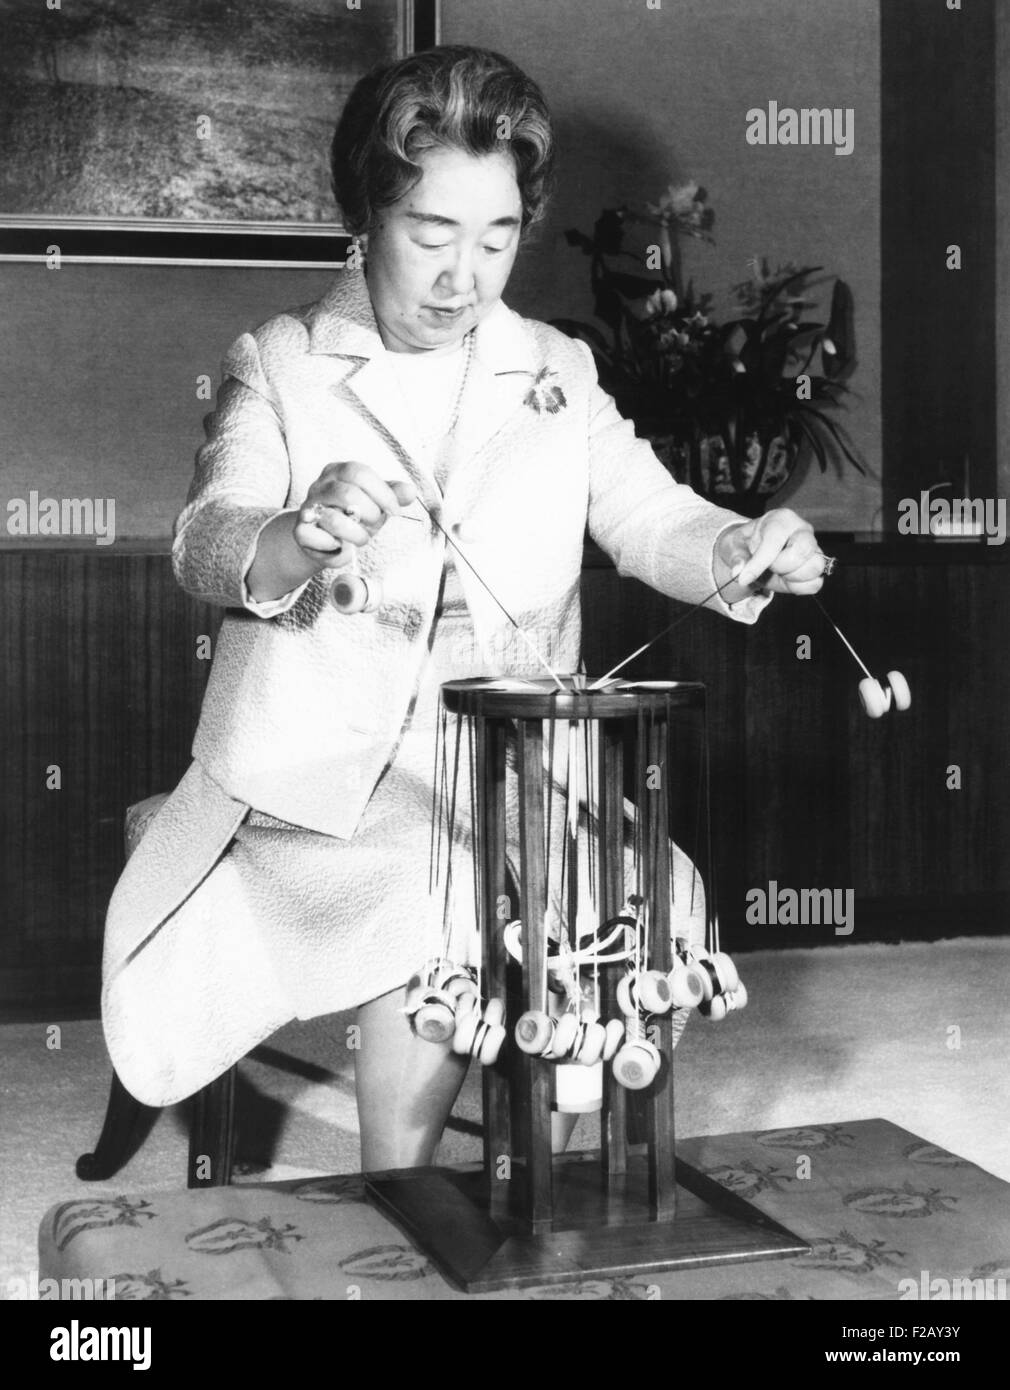 Japan's Empress Nagoto, weaving on a manual braiding machine at the Imperial Palace. March 17, 1971. The braids - Stock Image